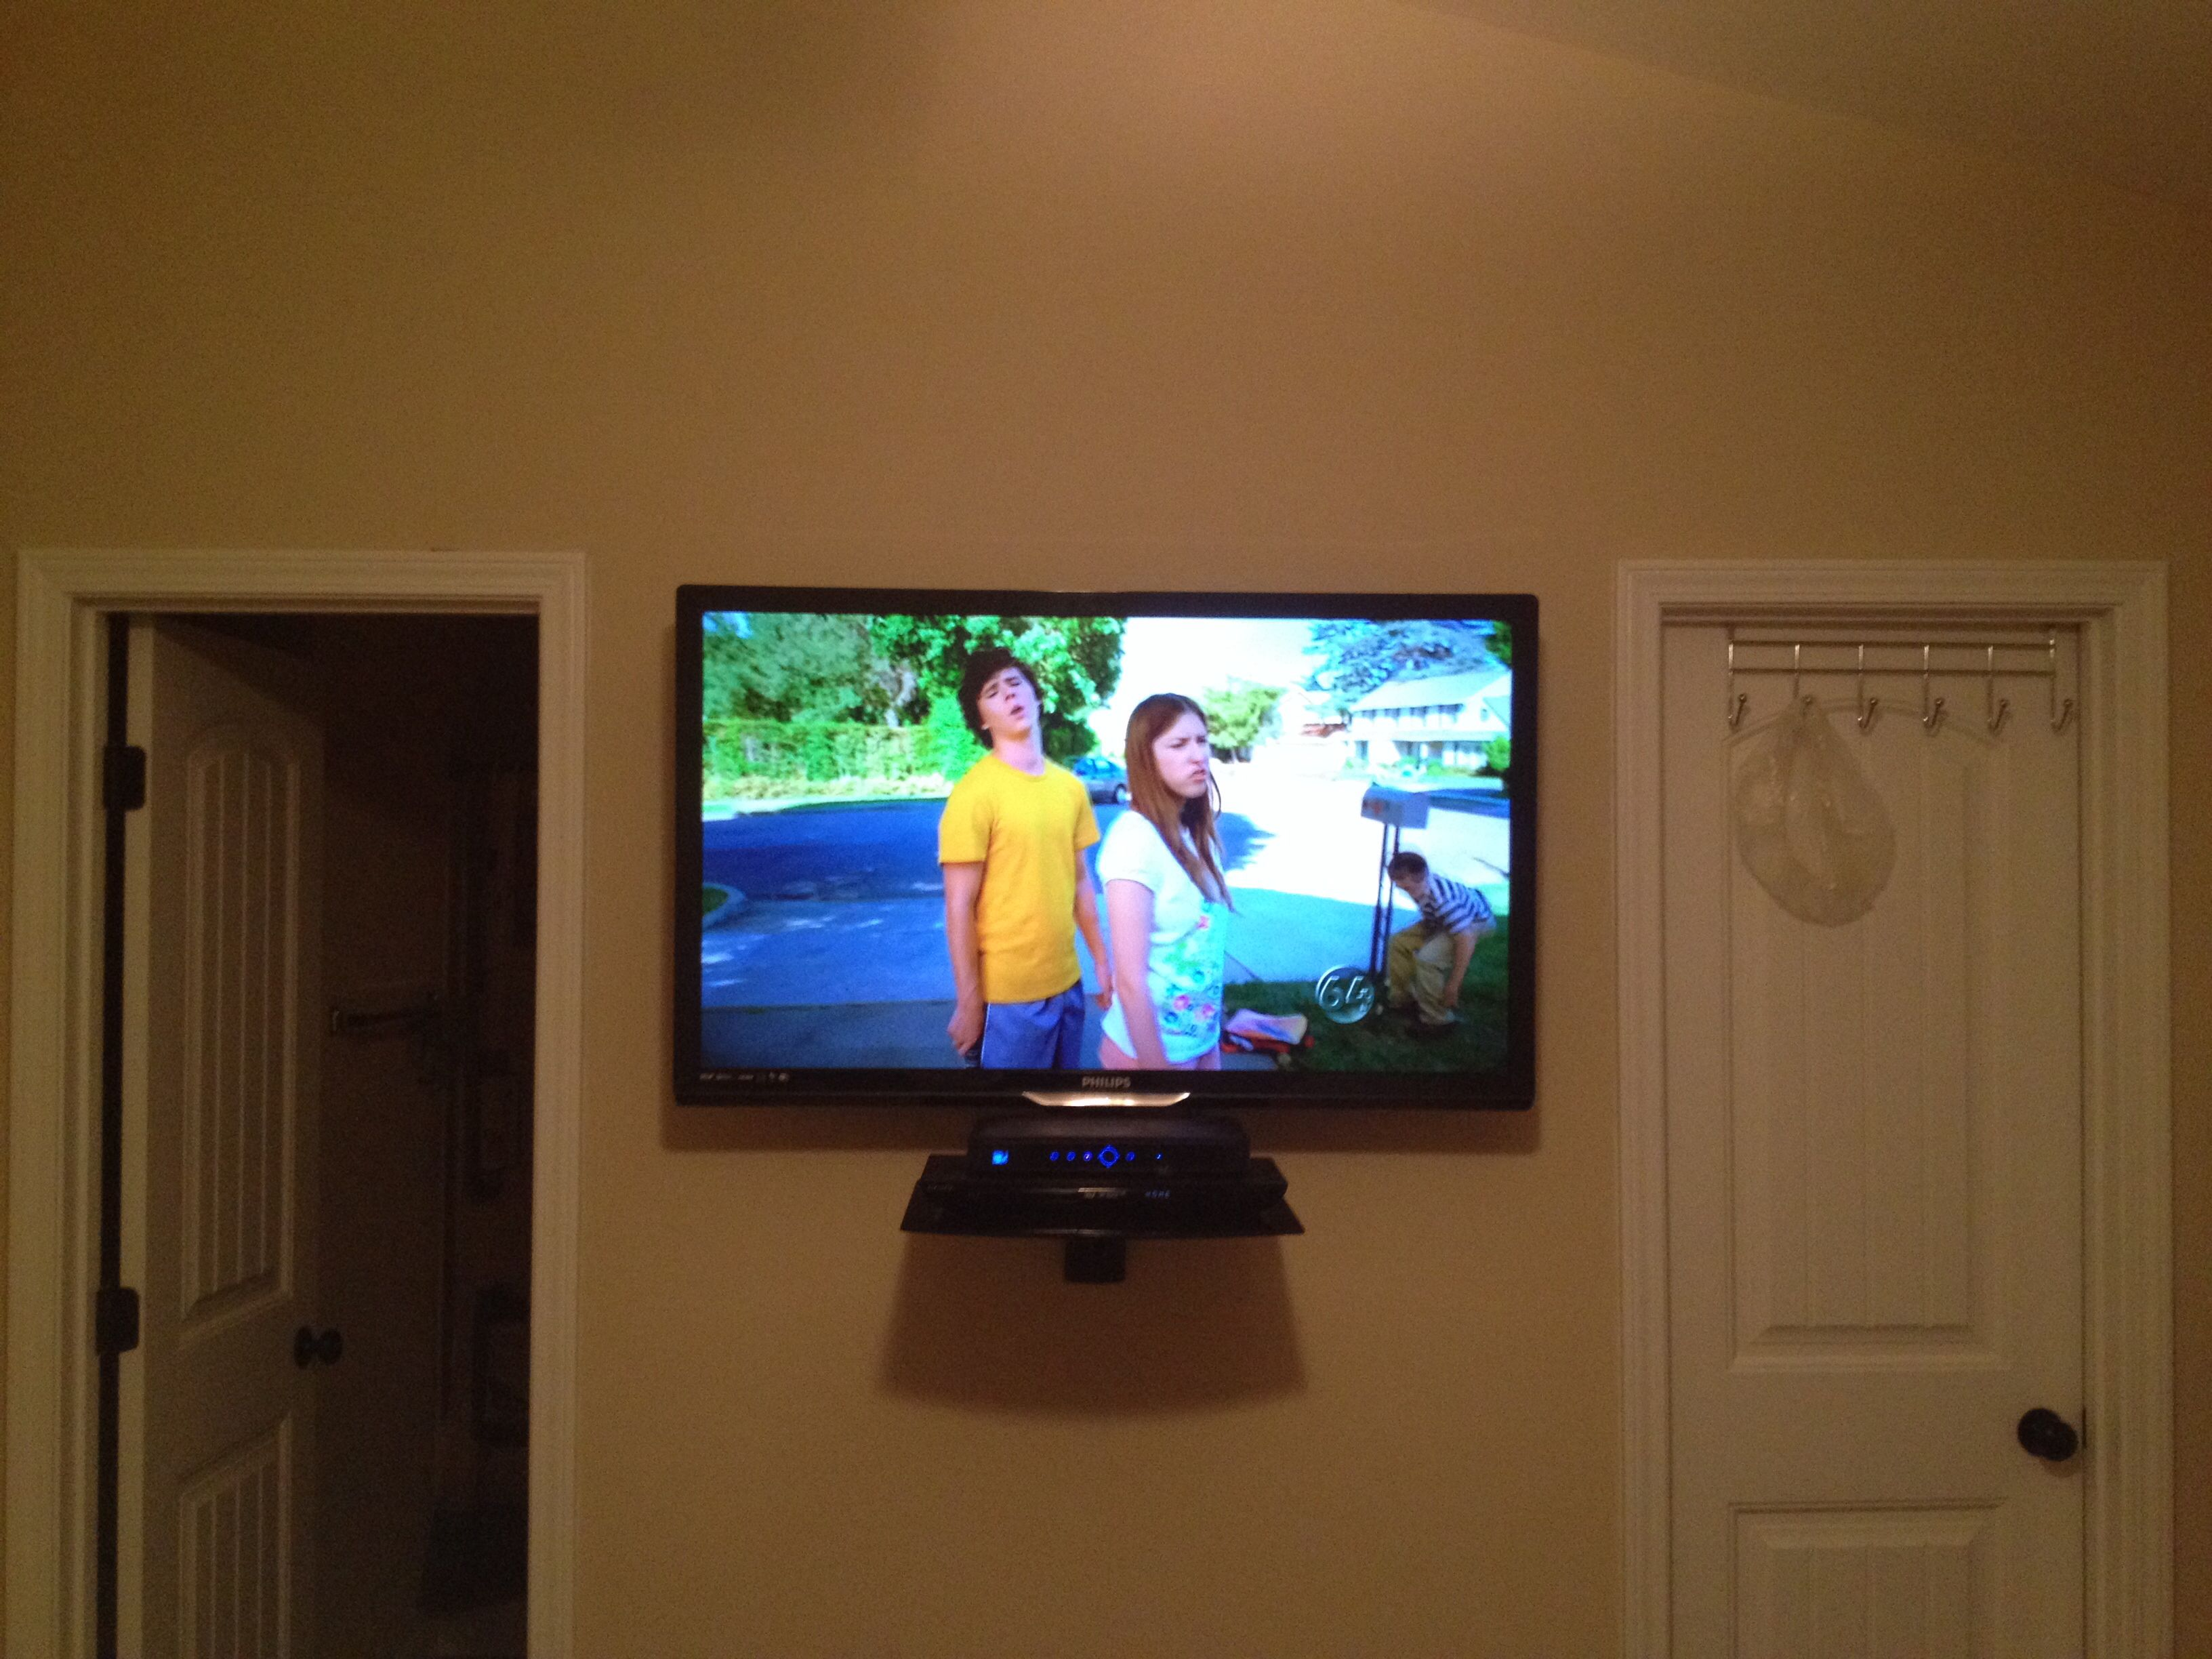 Fireplace Mounting Tv Fireplace Brick Wall Mount Over Hide Pin By Tv Mounting Service Charlotte On Tv Wall Mounting